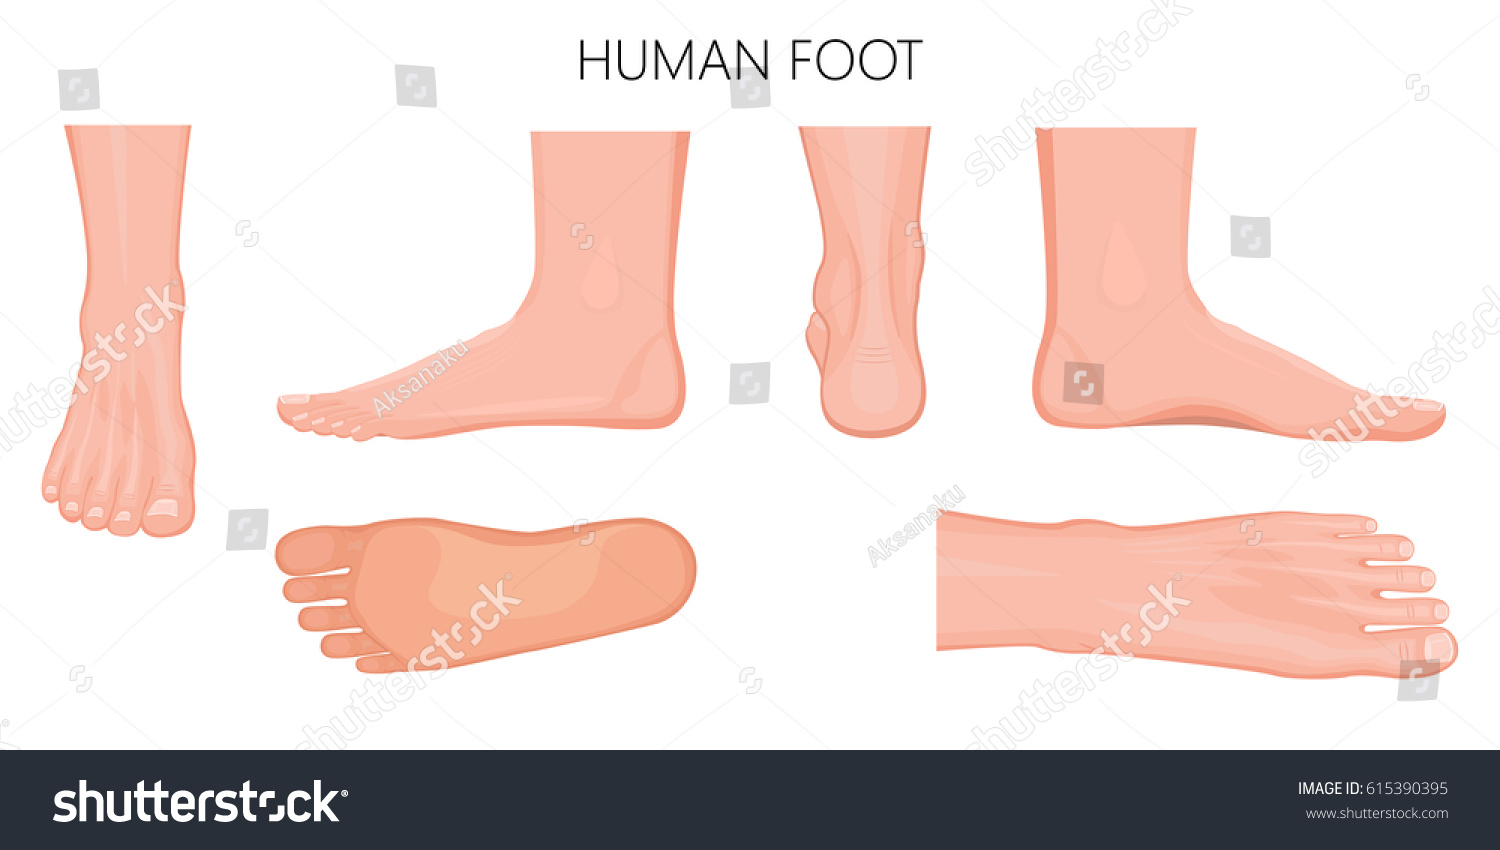 Different Views Human Foot Front Back Stock Vector Royalty Free